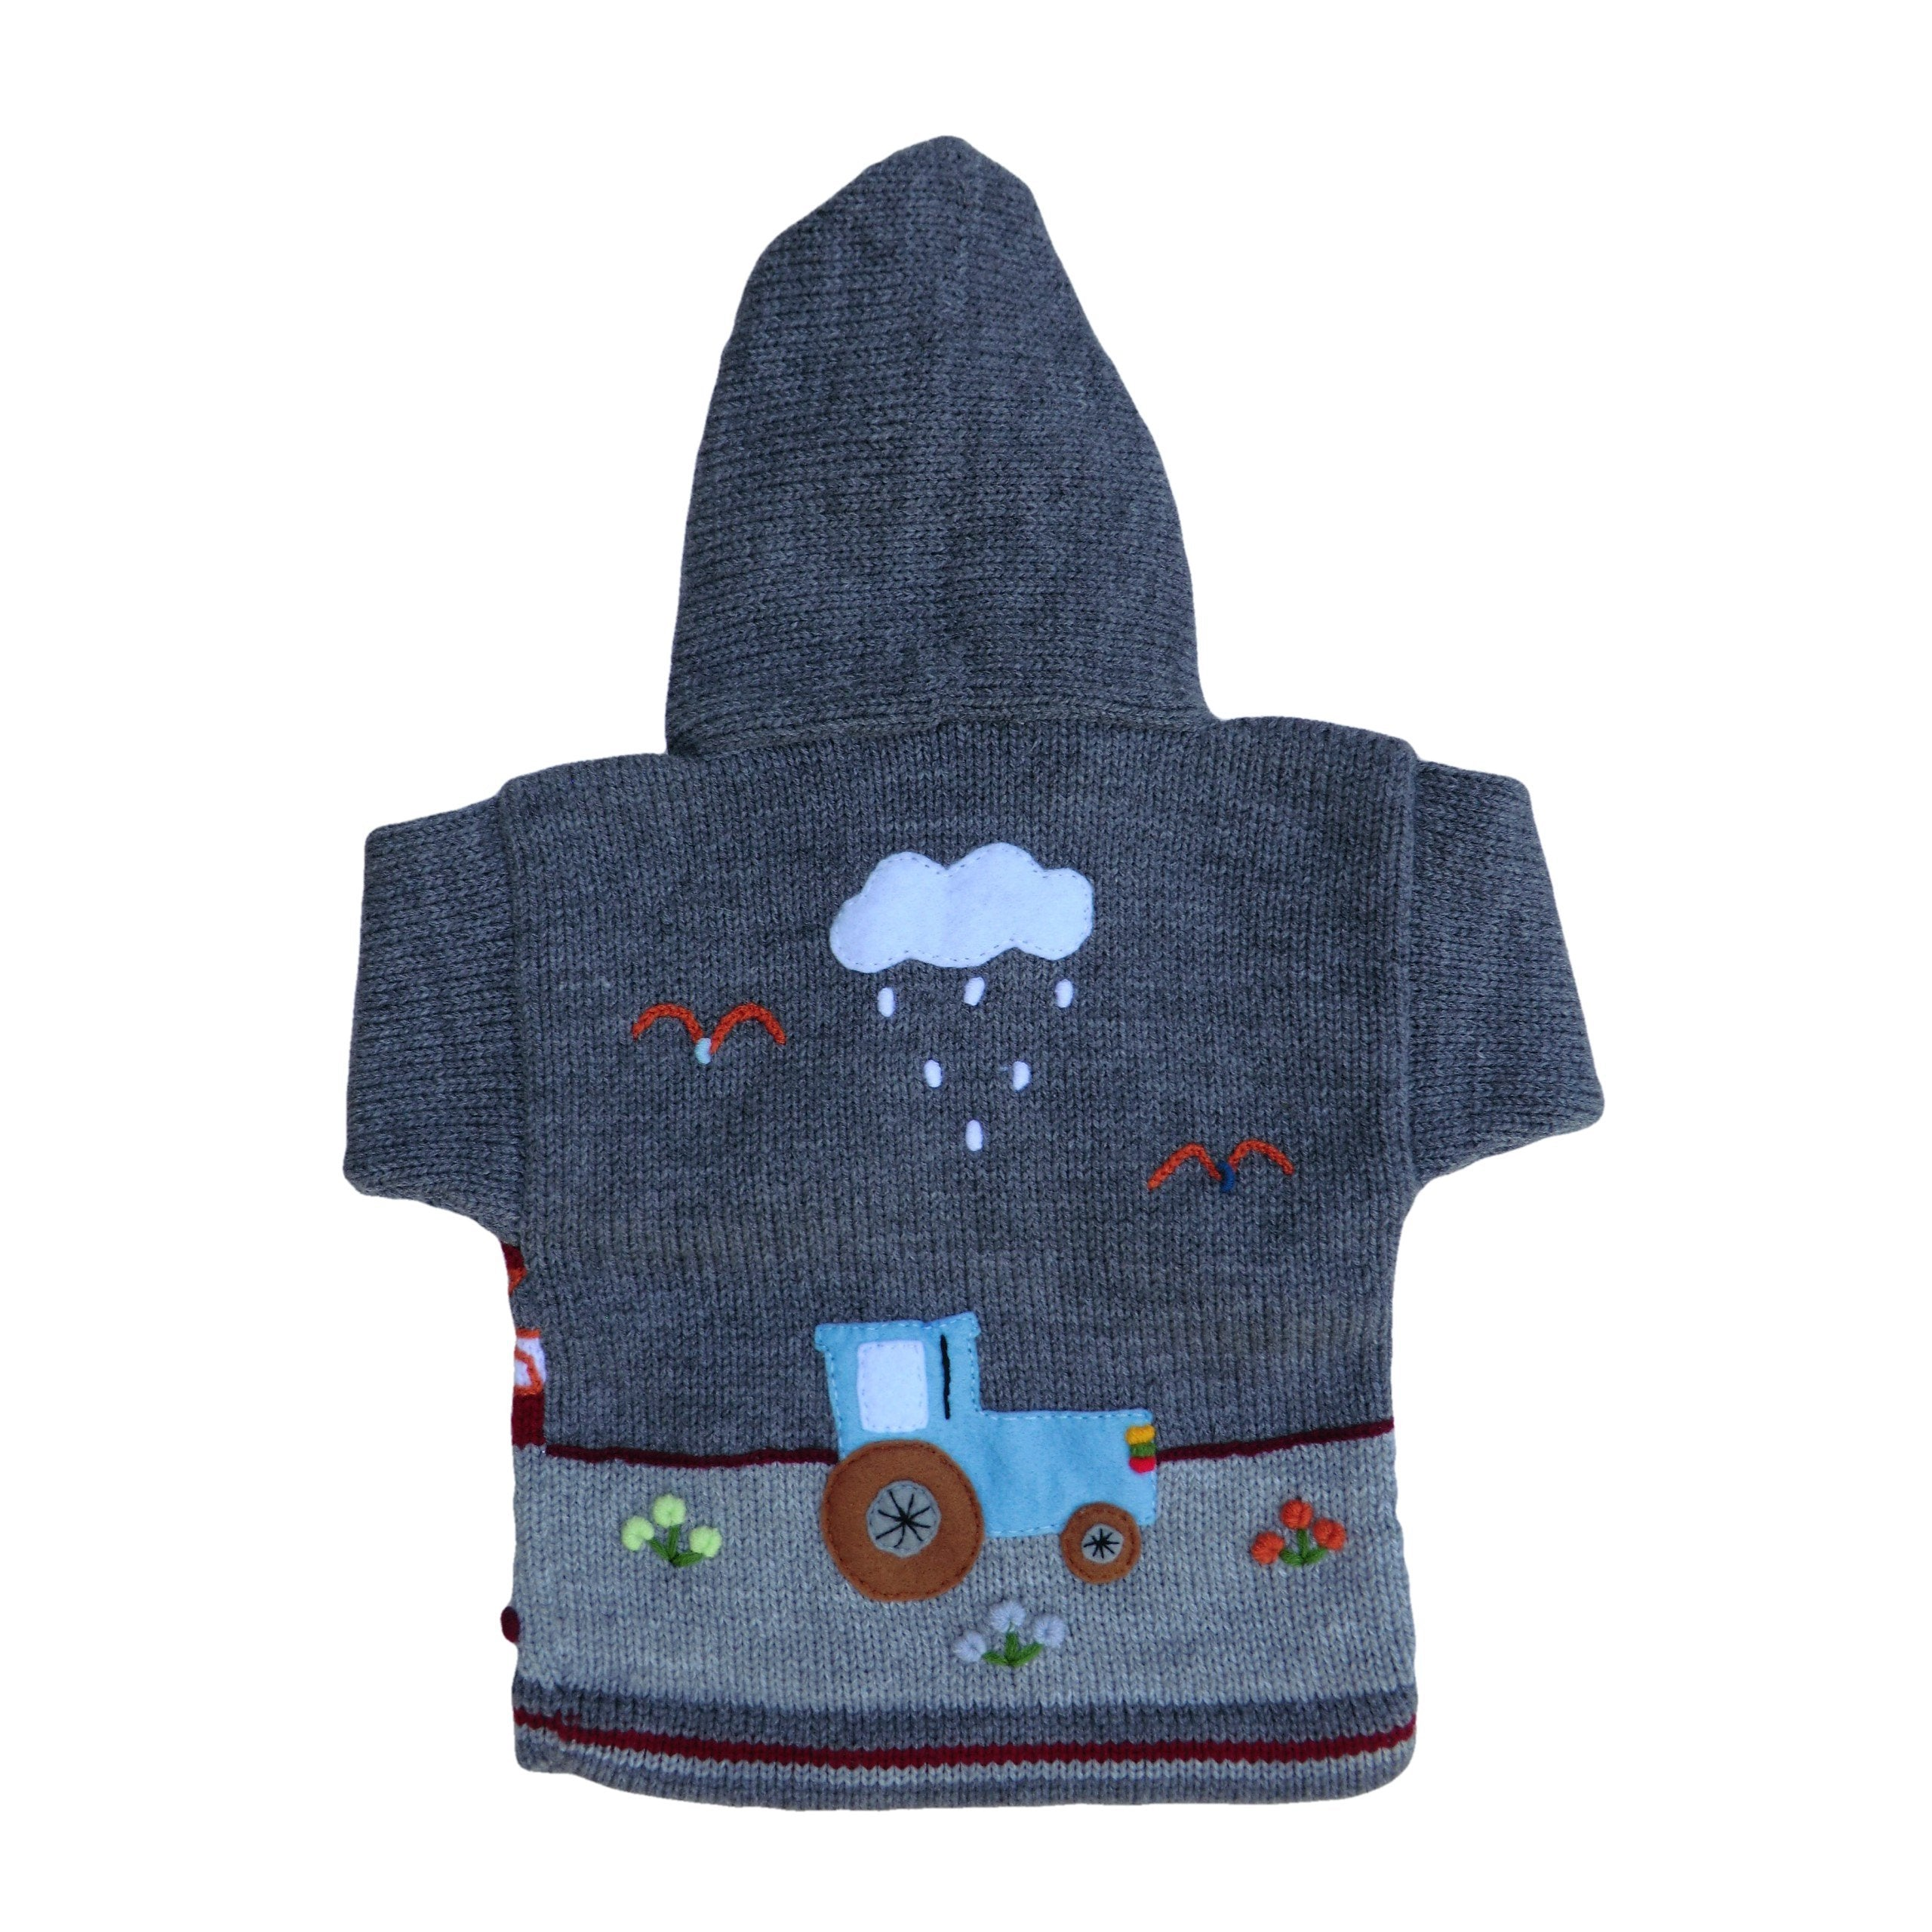 Children's Grey Cardigan - Farmyard - Matico